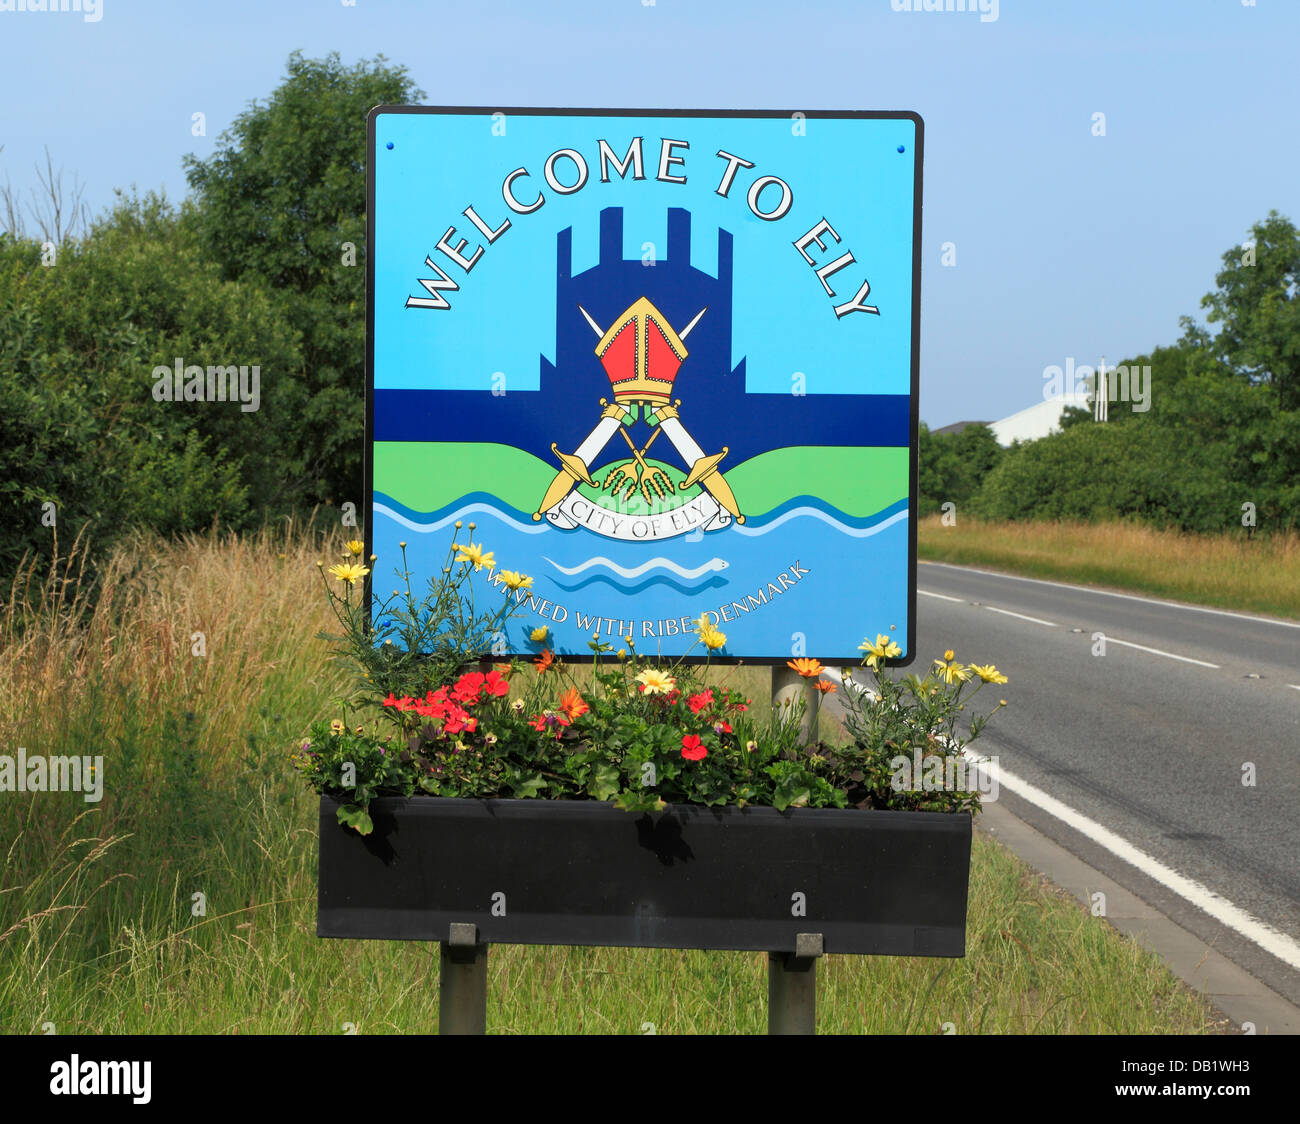 Ely, Welcome To Ely road sign, Cambridgeshire, England UK English city cities - Stock Image